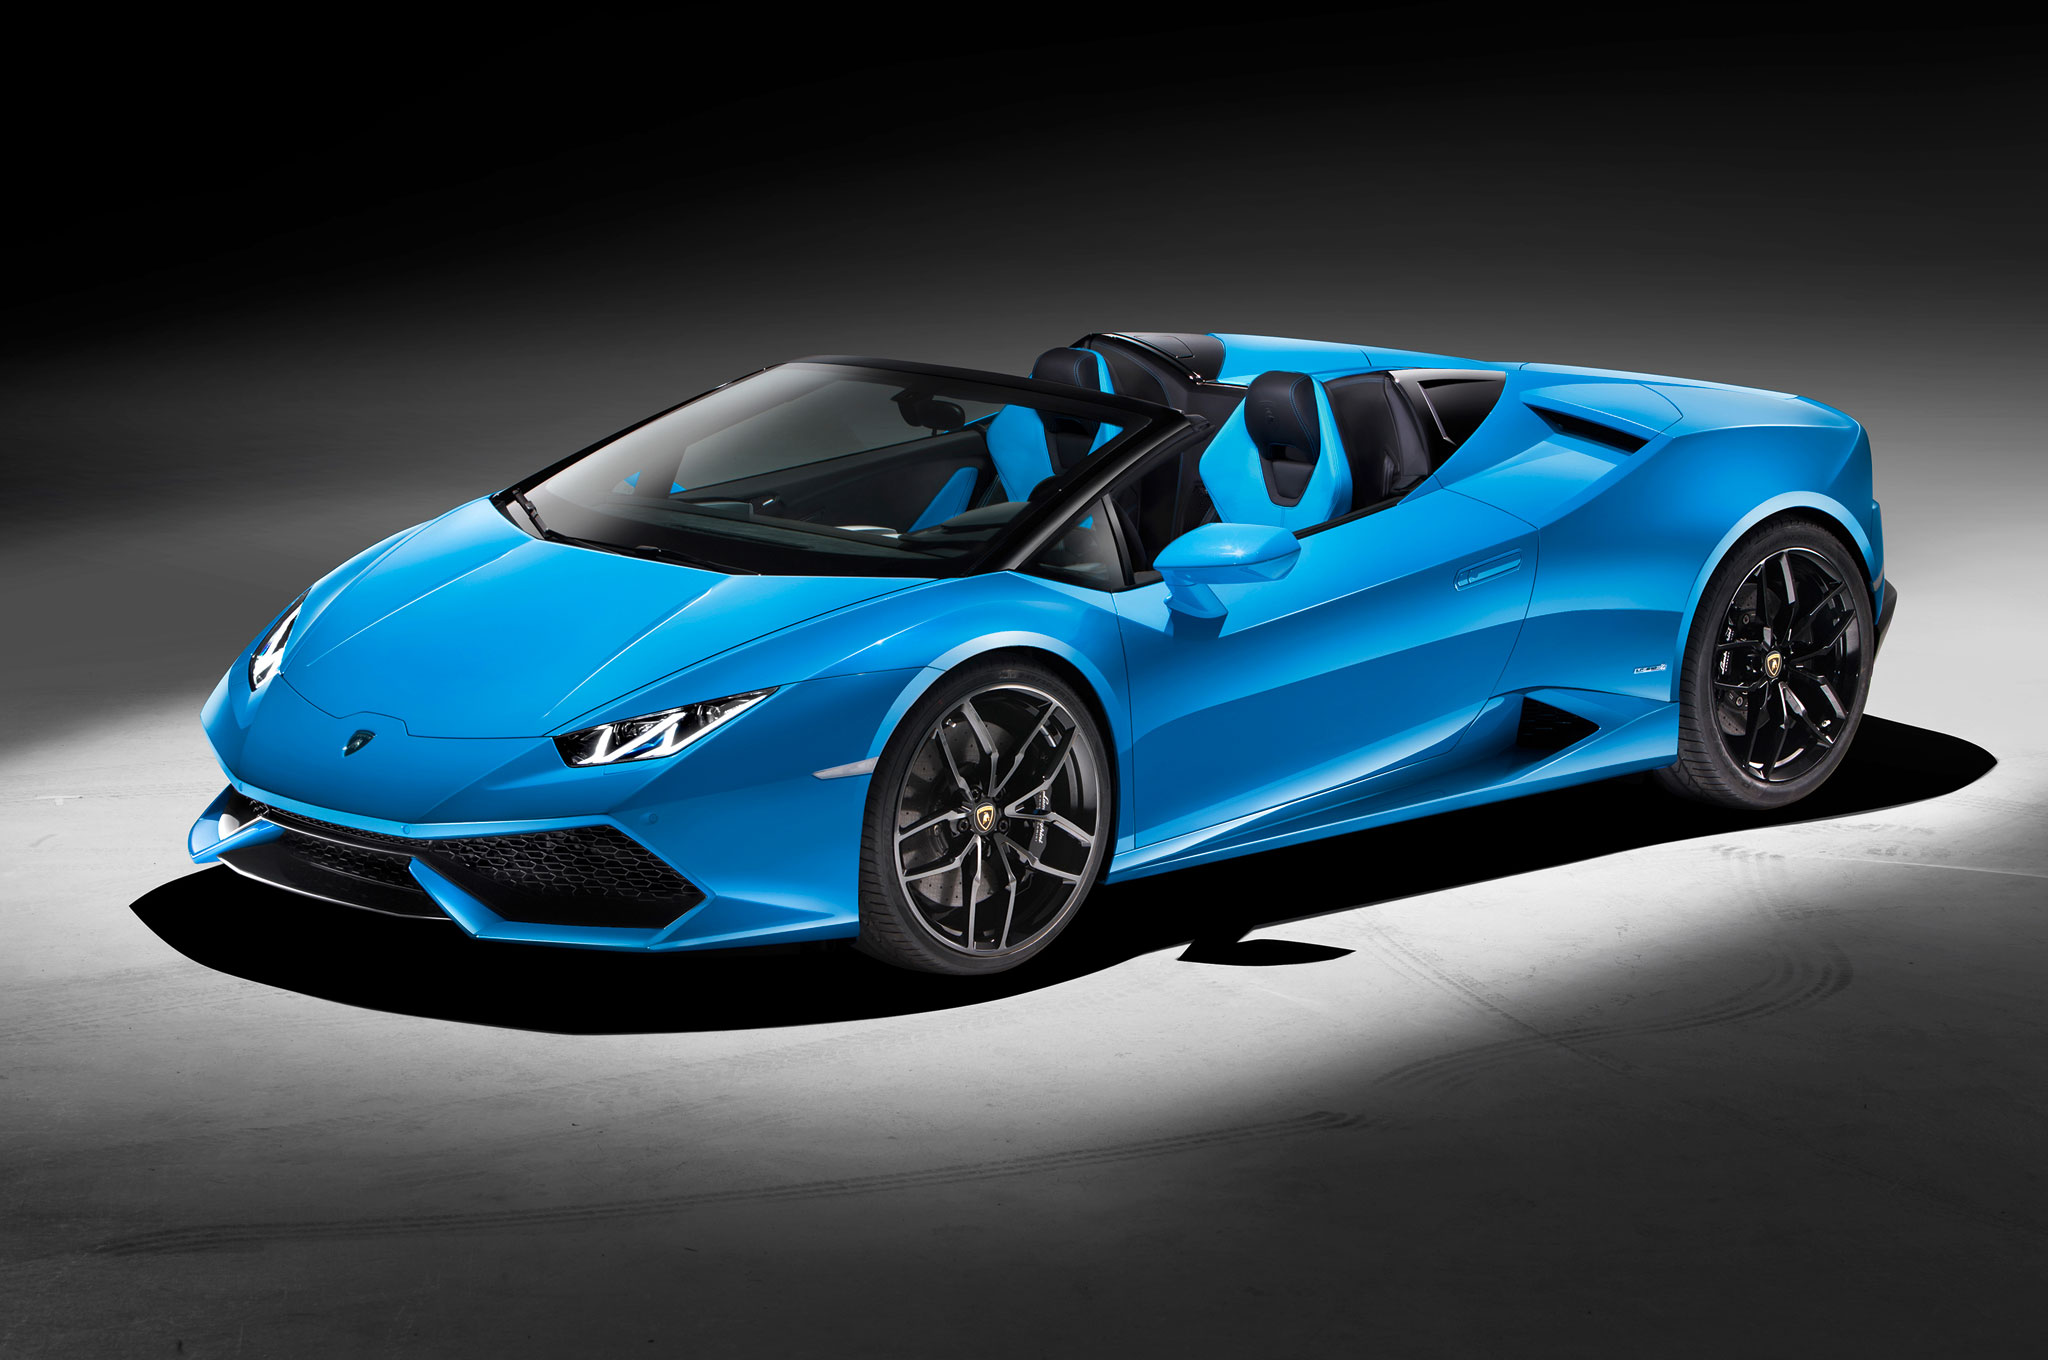 Lamborghini Huracan Spyder Front Side View